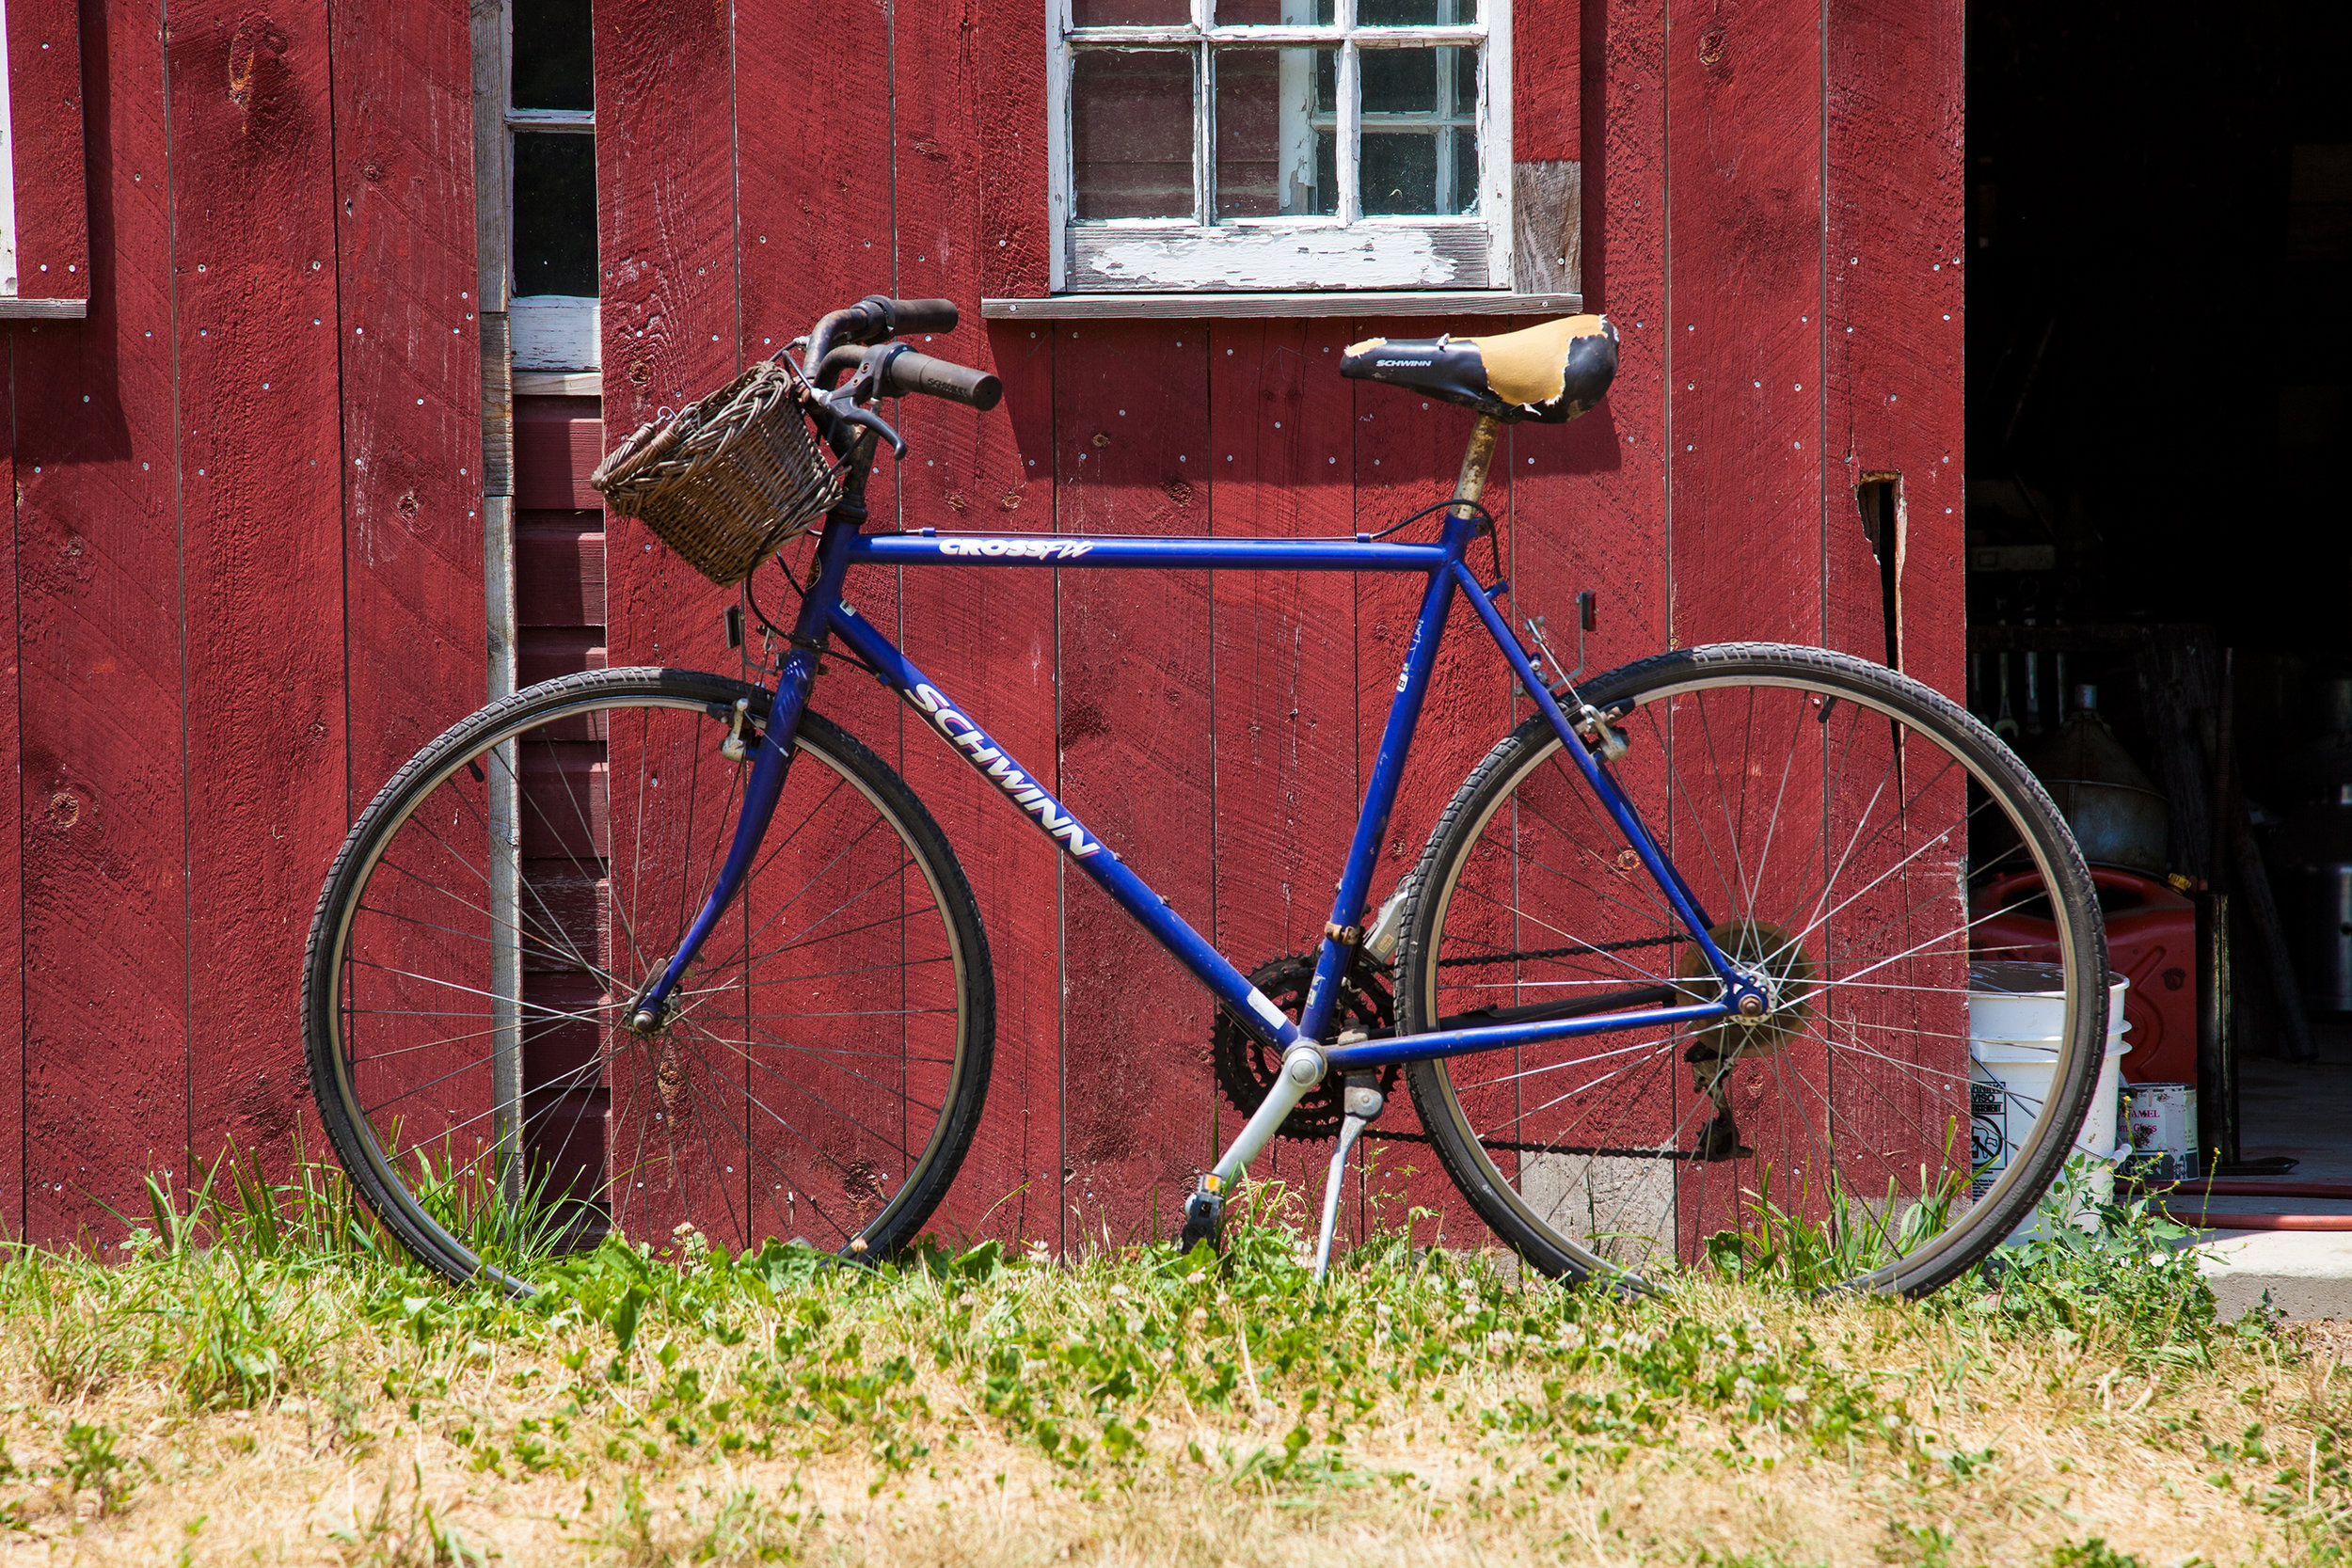 BIKE-STONEWALL-DAIRY-FARM-2016-©-JONATHAN-R.-BECKERMAN-PHOTOGRAPHY-2.jpg